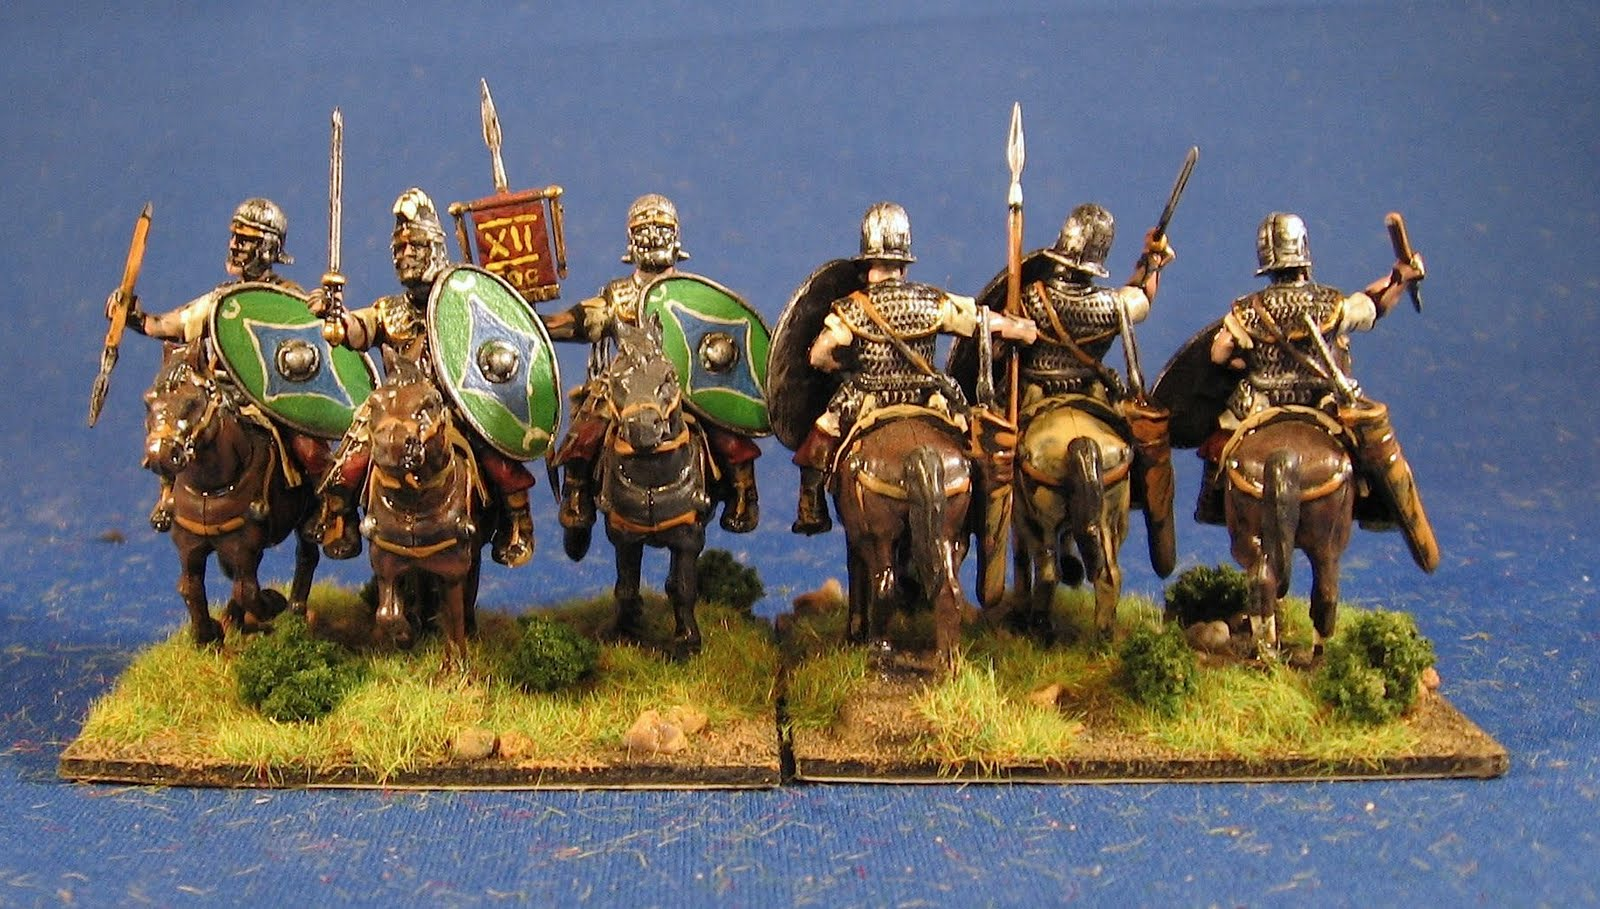 bob u0026 39 s miniature wargaming blog  28mm roman horse